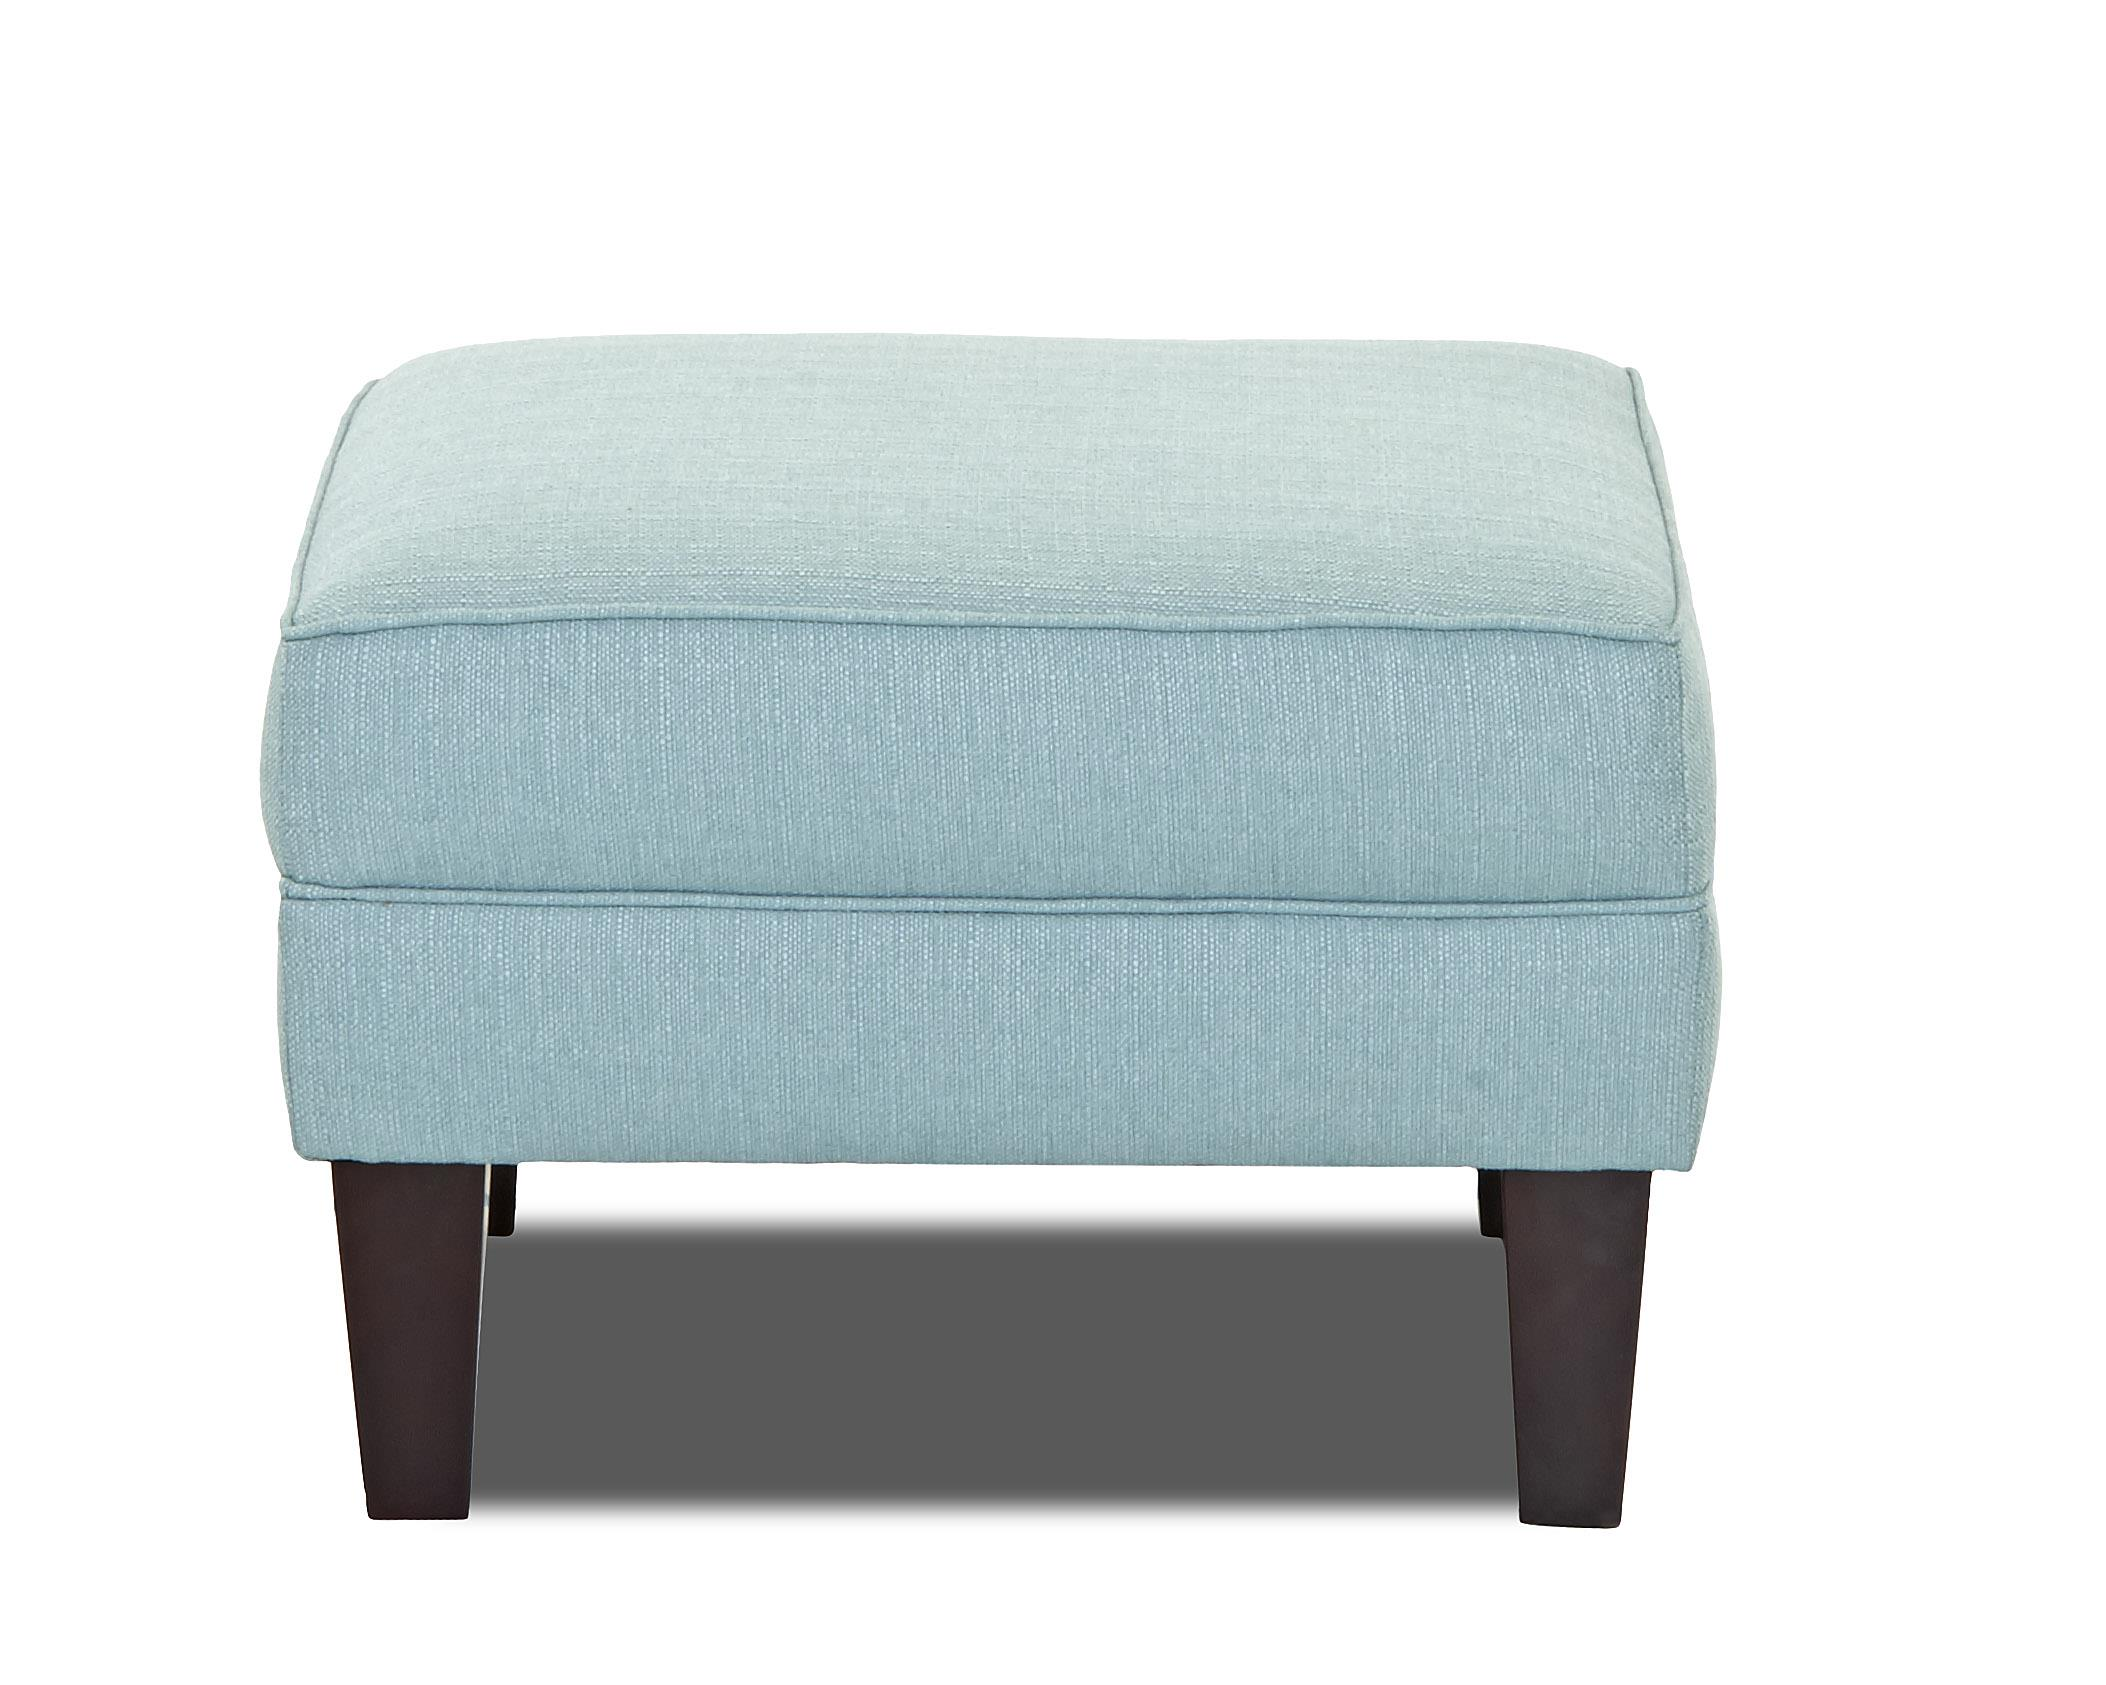 Klaussner Kaitlyn Ottoman - Item Number: K940 OTTO-DraftTurquoise